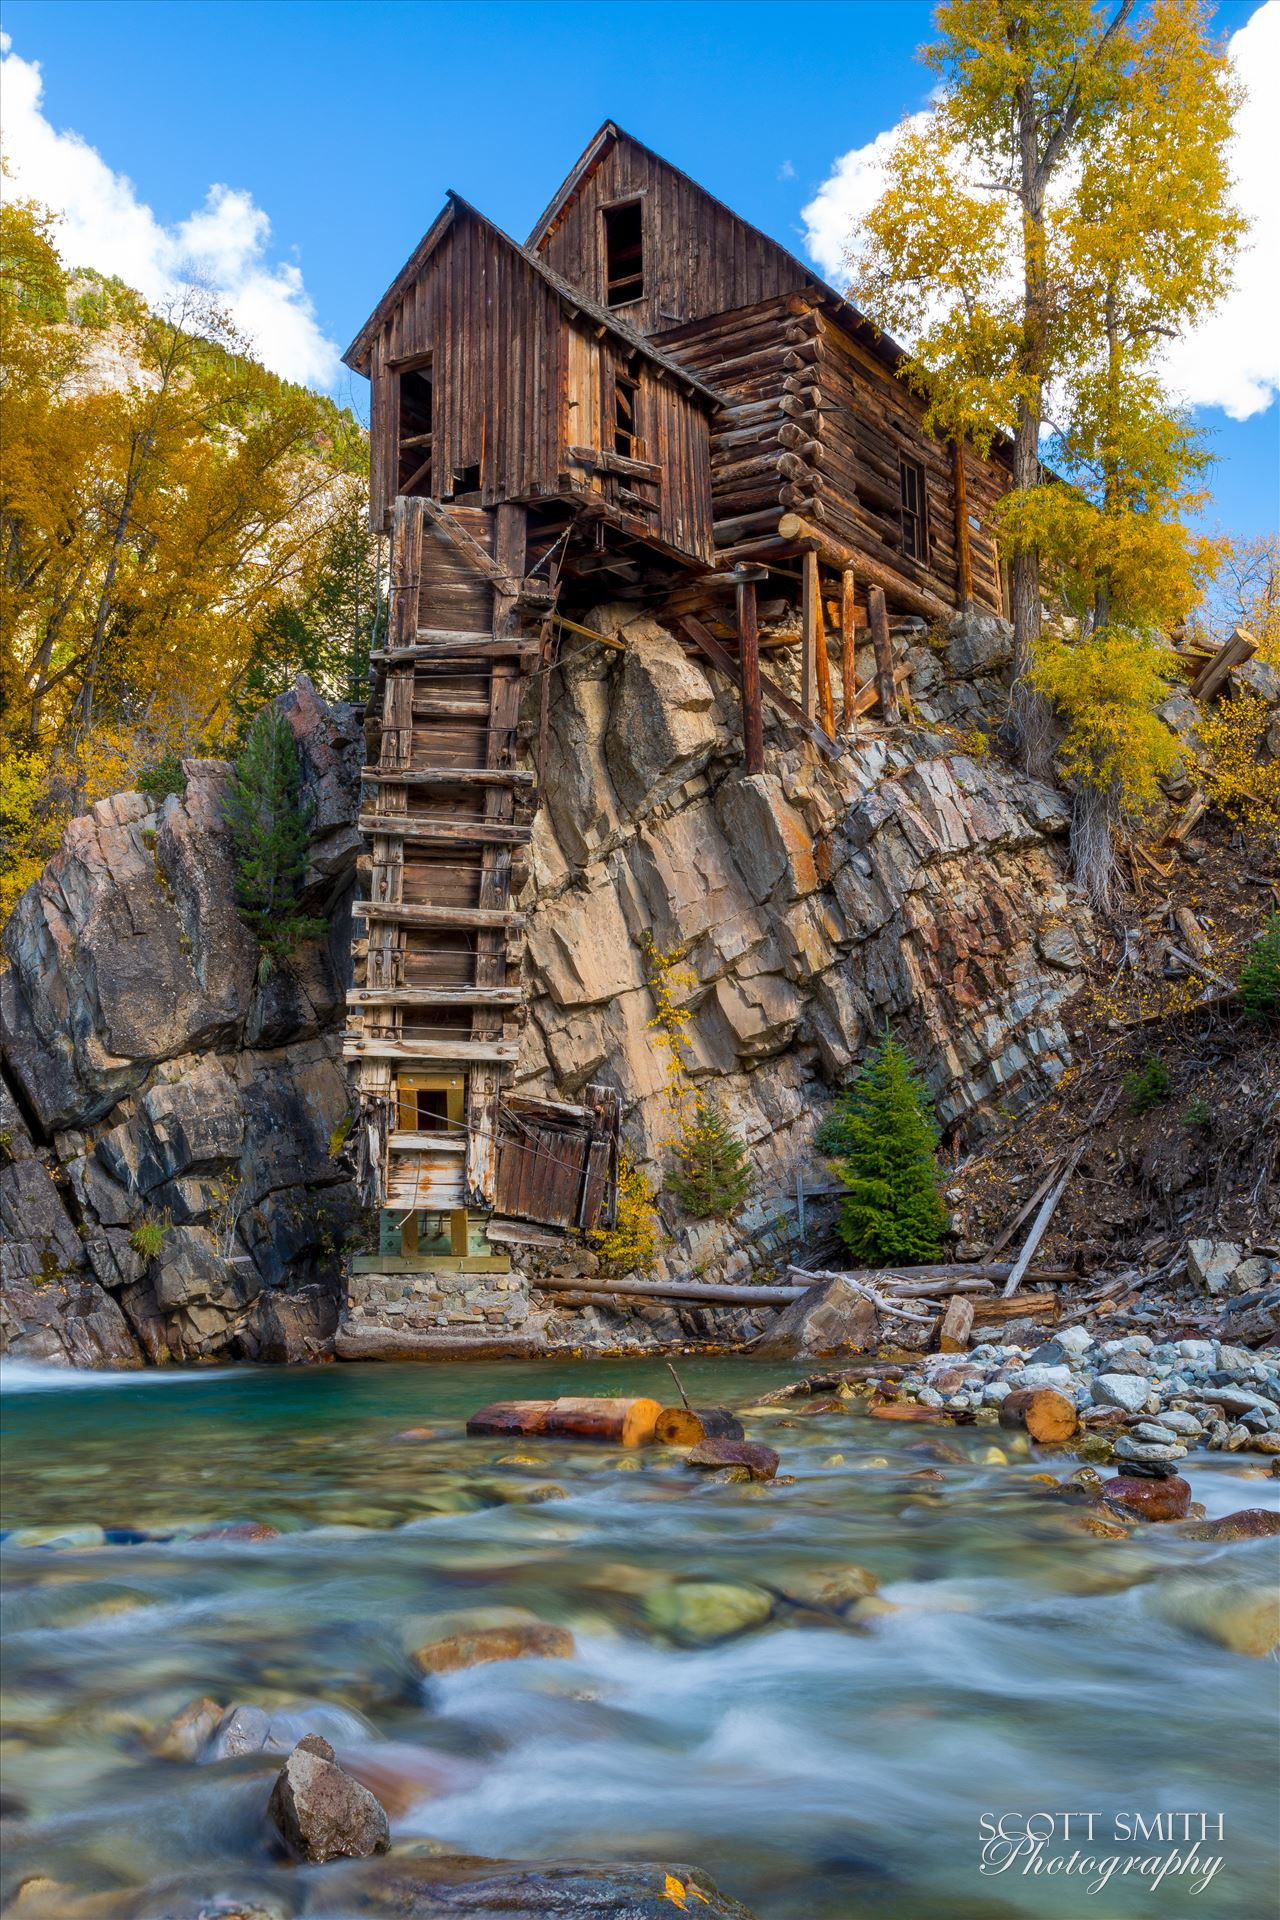 Crystal Mill, Colorado 09 - The Crystal Mill, or the Old Mill is an 1892 wooden powerhouse located on an outcrop above the Crystal River in Crystal, Colorado by Scott Smith Photos